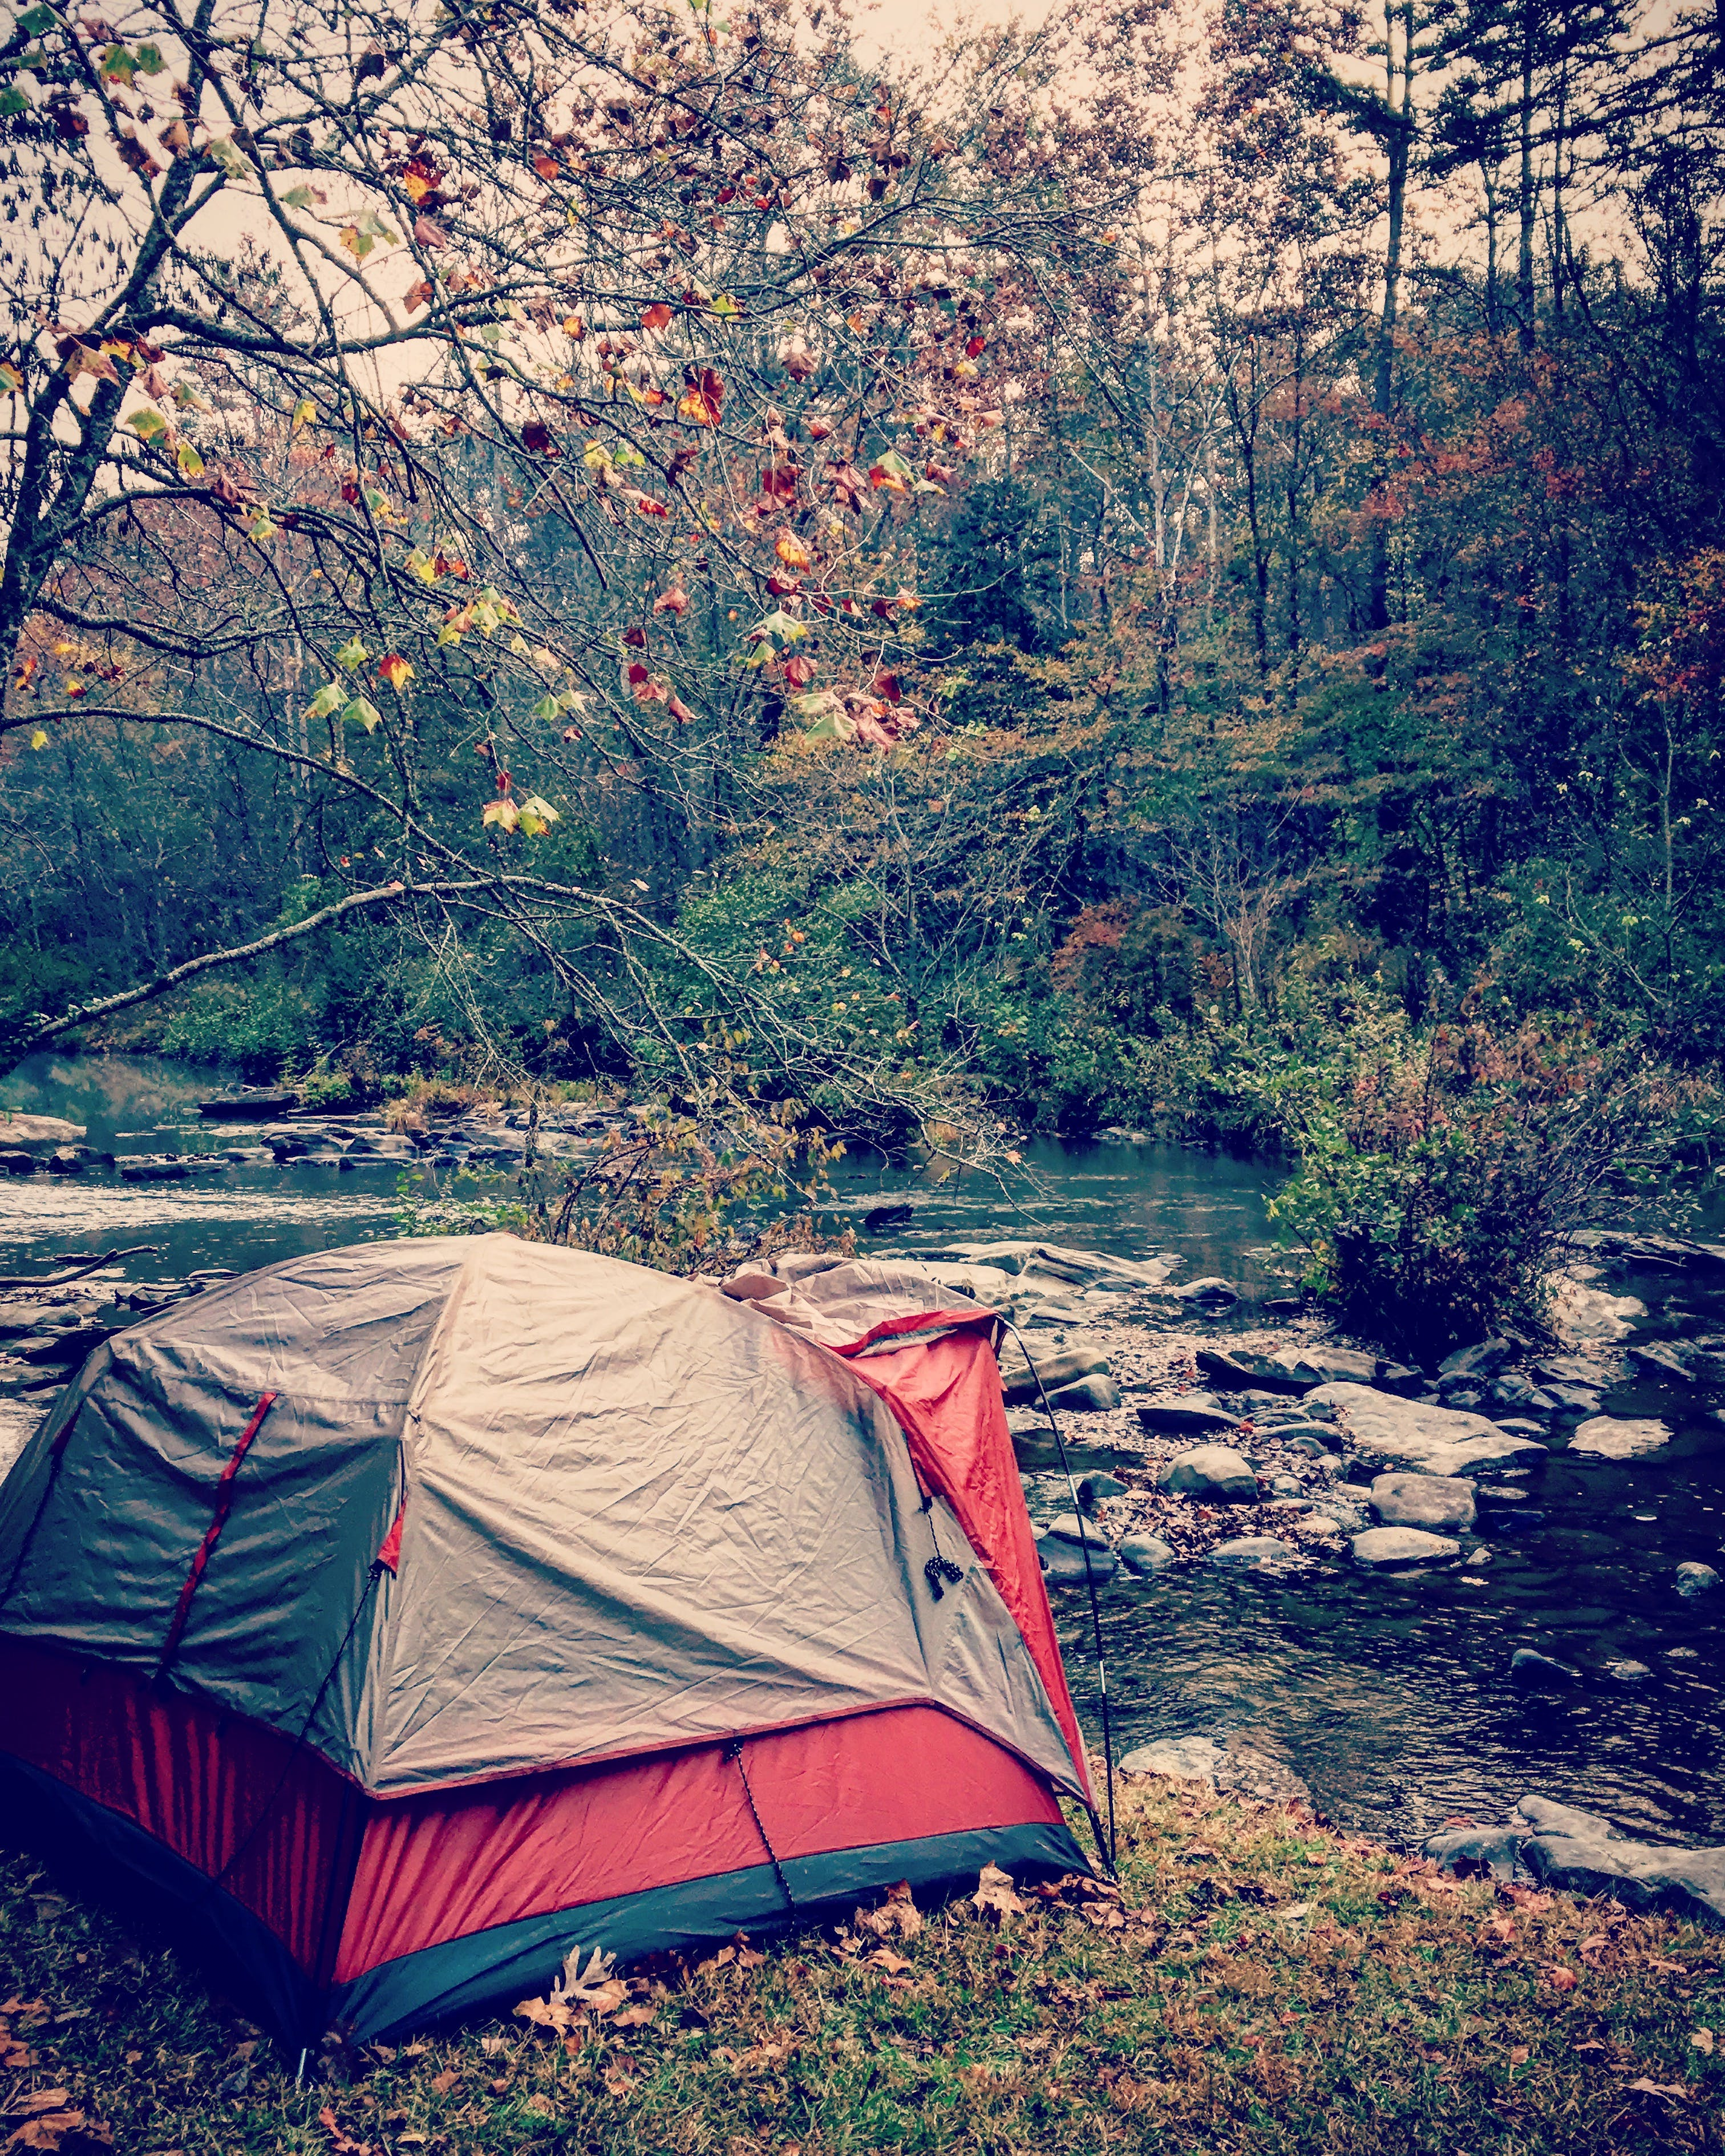 Gray and Red Dome Tent in Forest